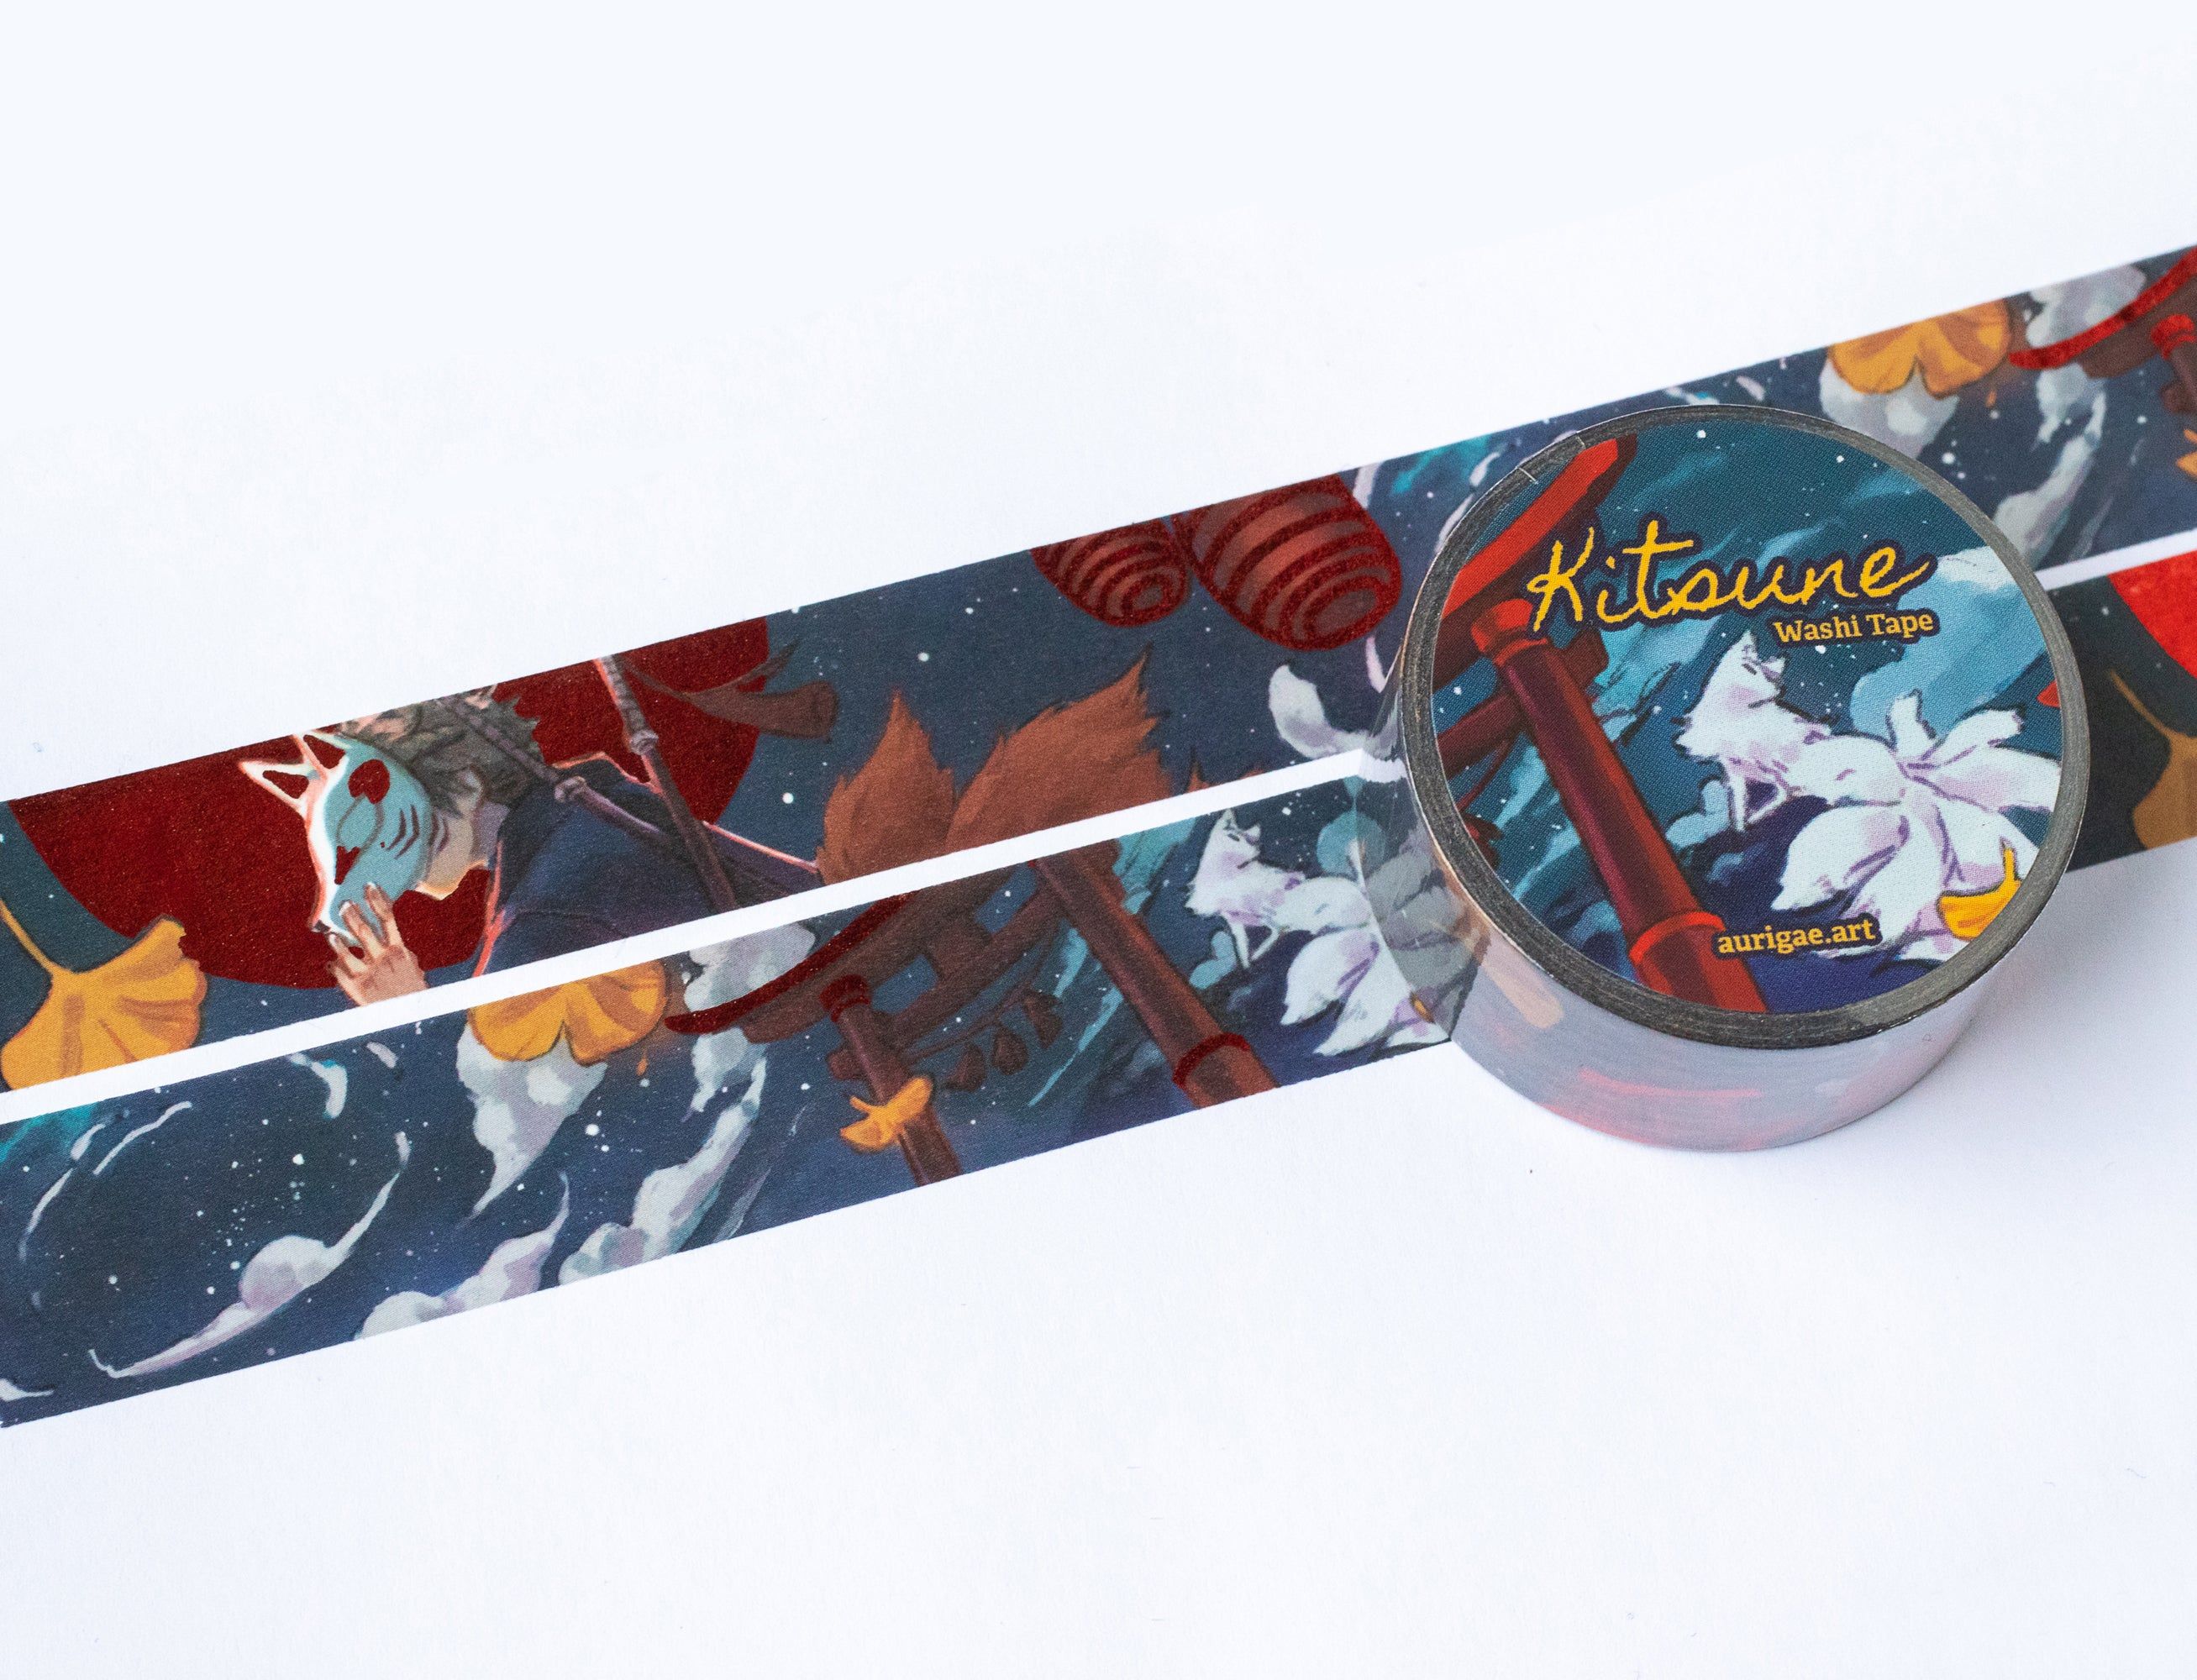 Kitsune | Washi Tape - Aurigae Art &Illustration